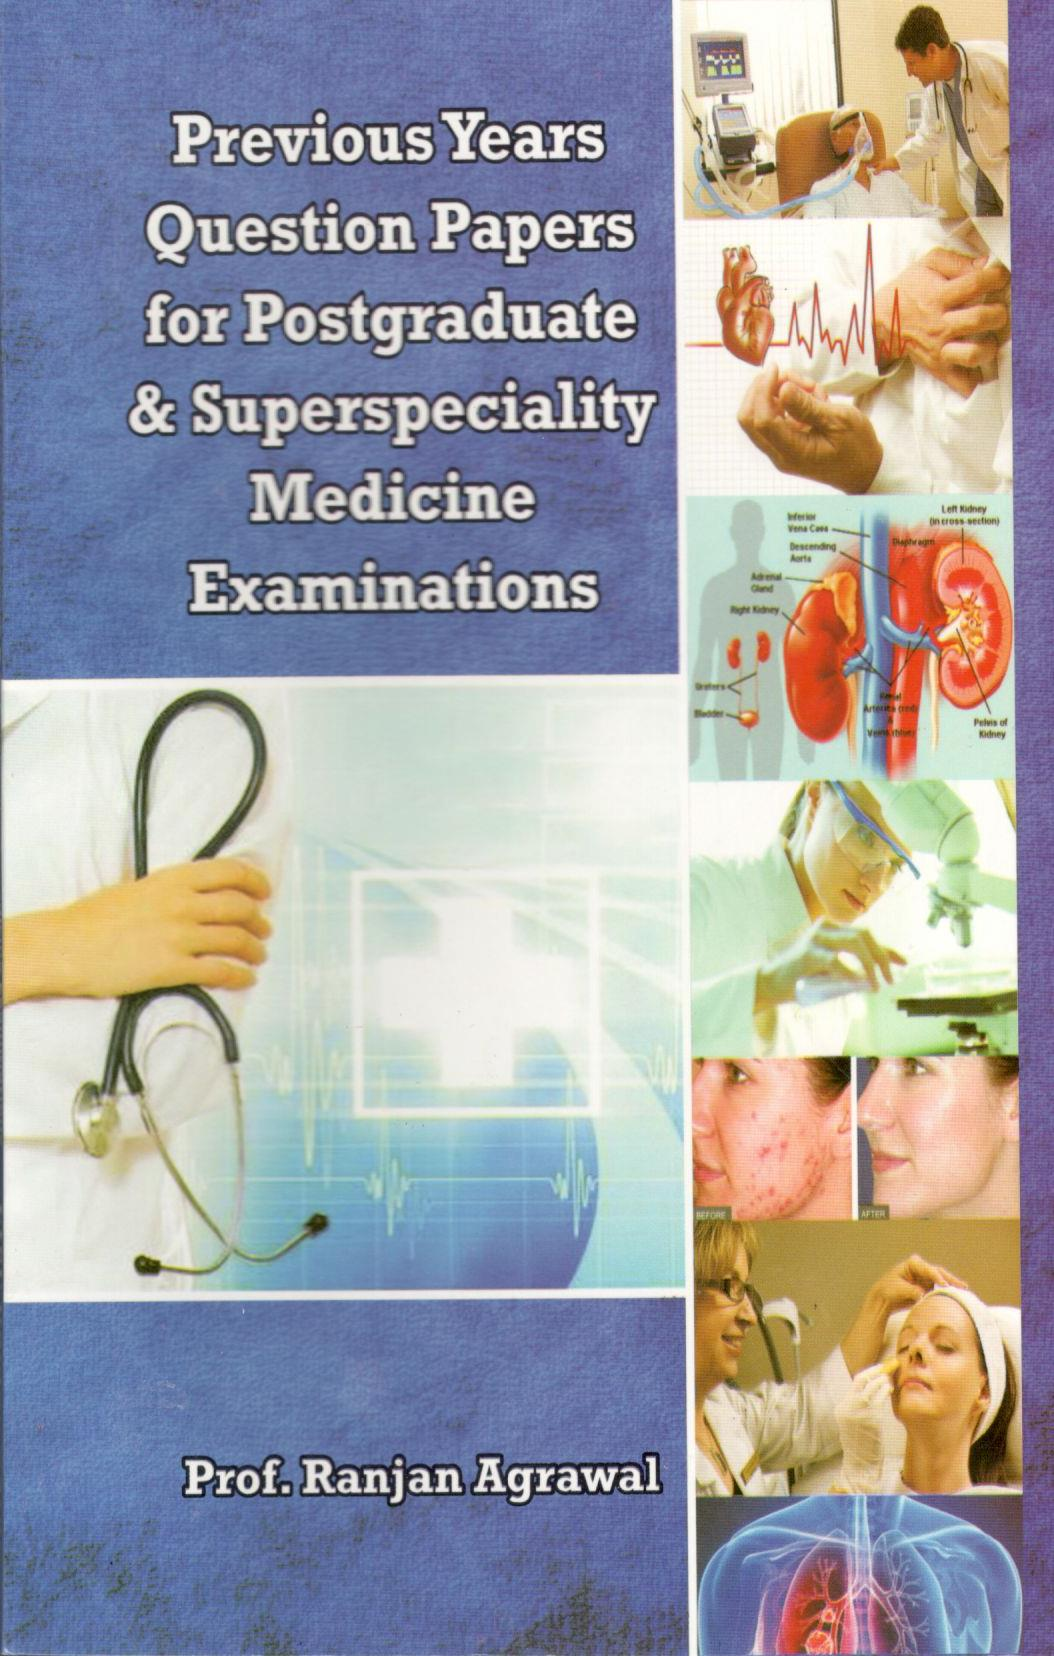 Previous Years Question Papers for Postgraduate & Superspeciality